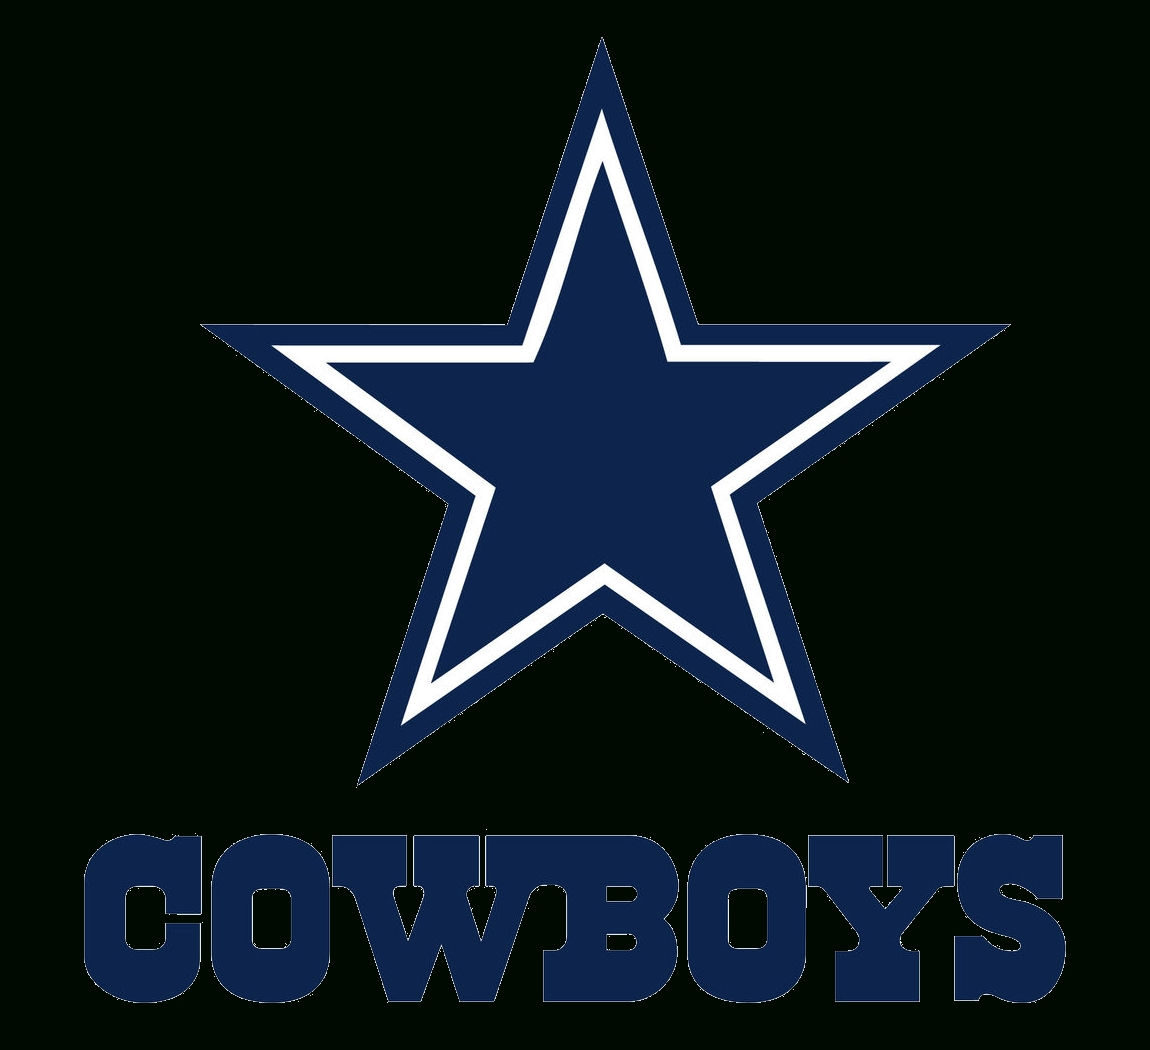 dallas cowboys logo, dallas cowboys symbol meaning, history and